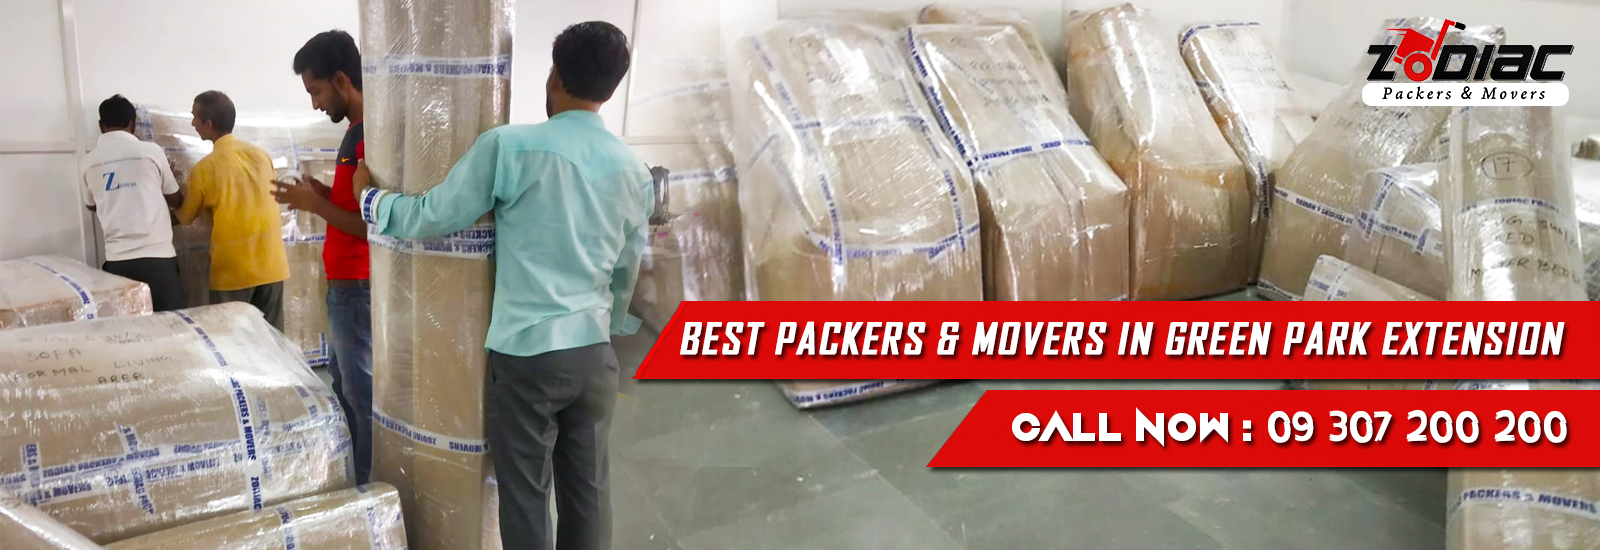 Packers and Movers in Green Park Extension